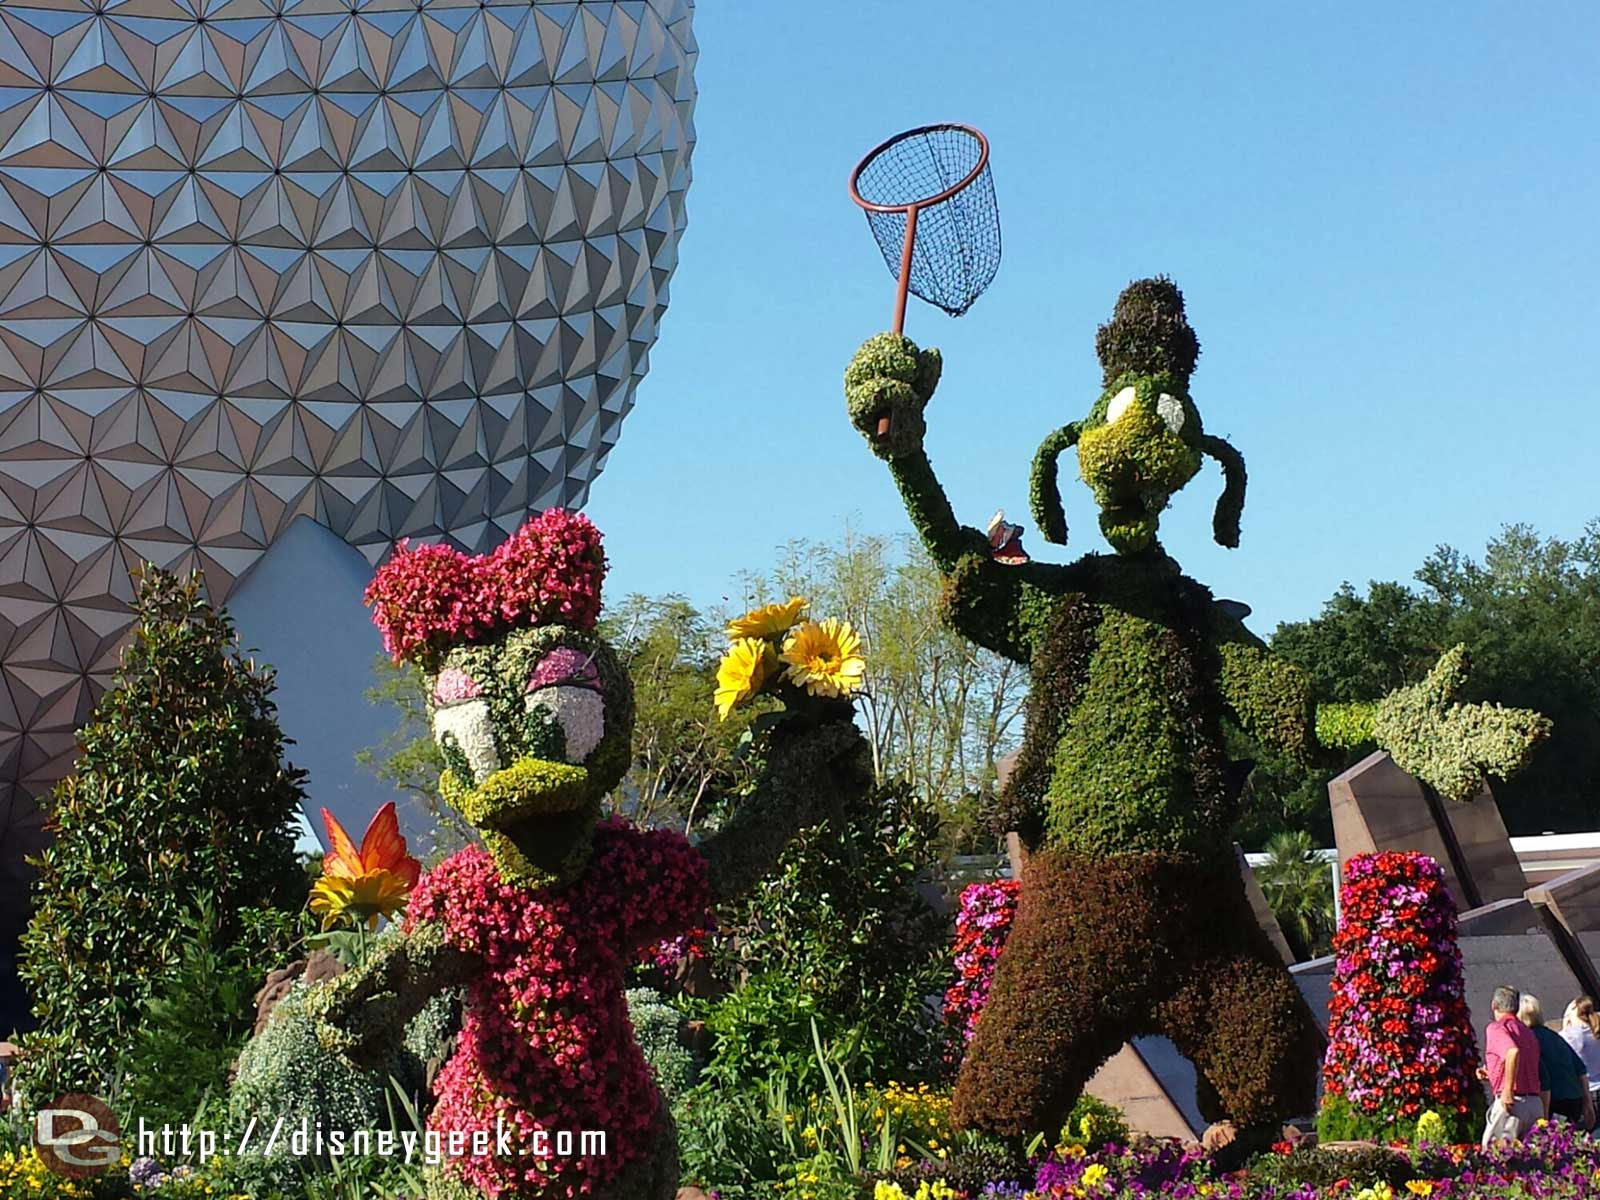 A closer look at Goofy and Daisy topiaries - Epcot International Flower & Garden Festival